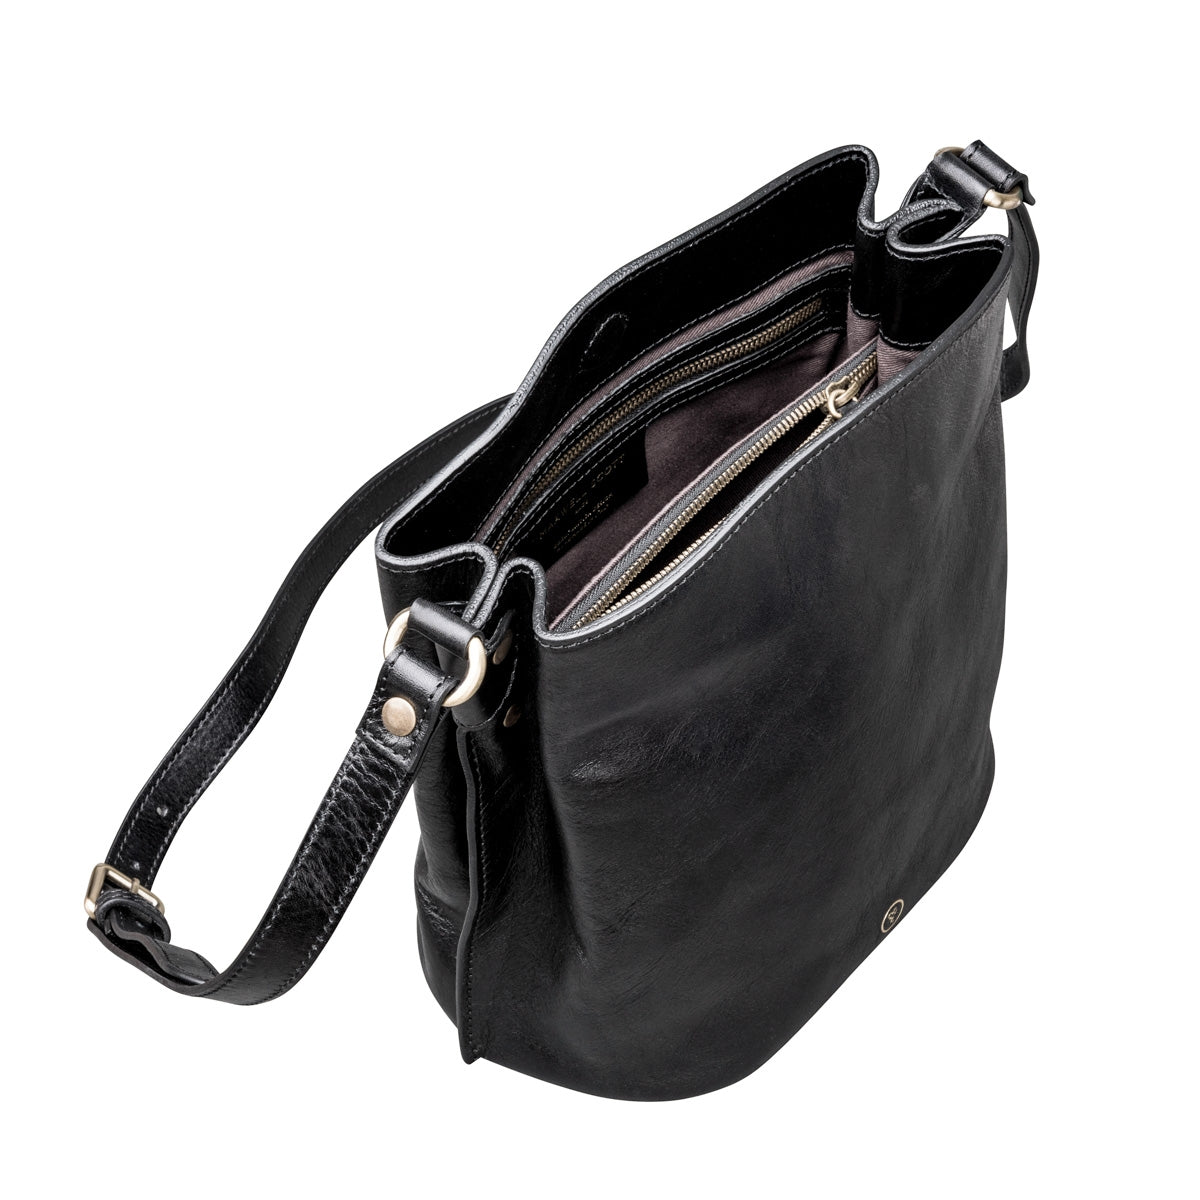 Image 5 of the 'Palermo' Handmade Black Veg-Tanned Leather Shoulder Bag